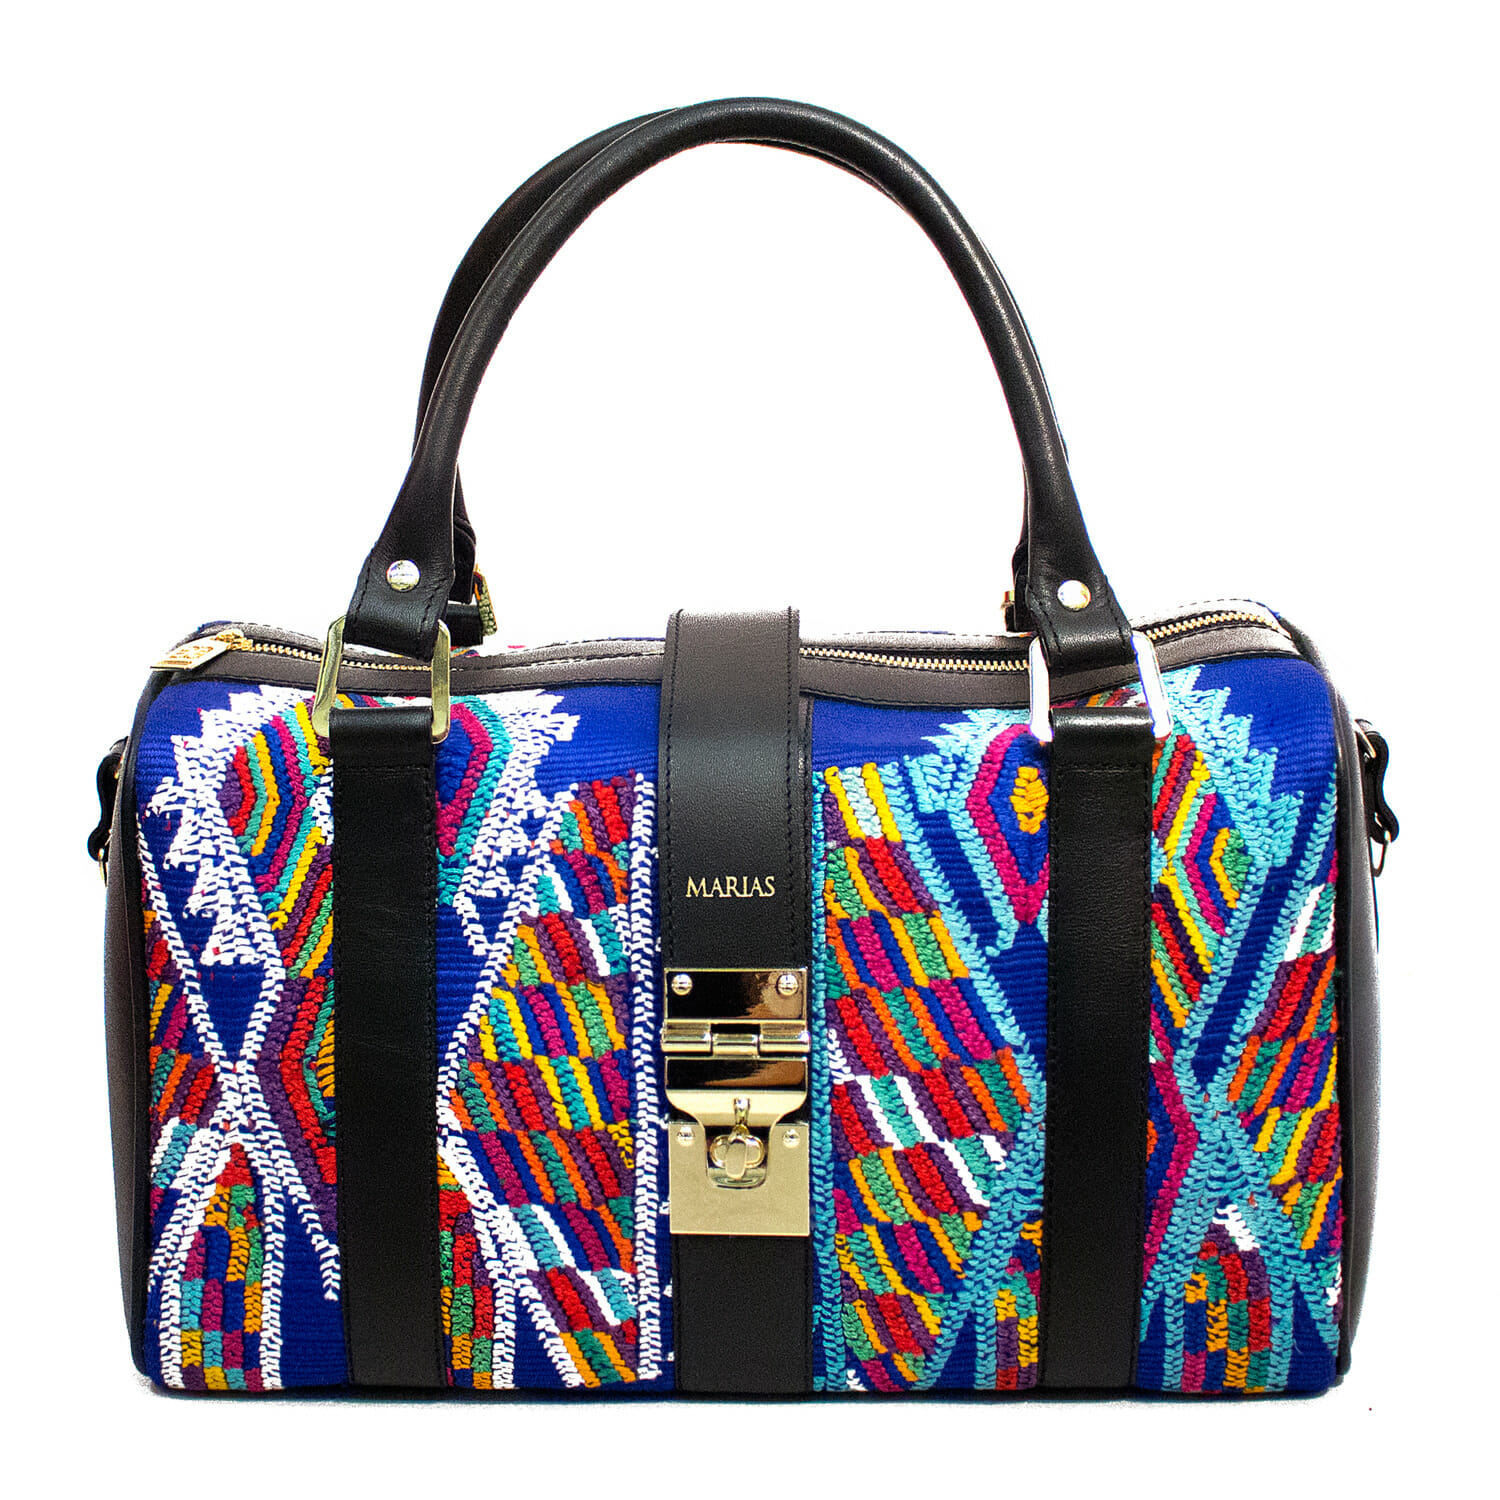 Part of the Technicolor collection, the Dante barrel bag mixes unique Mayan patterns and textures with leather.